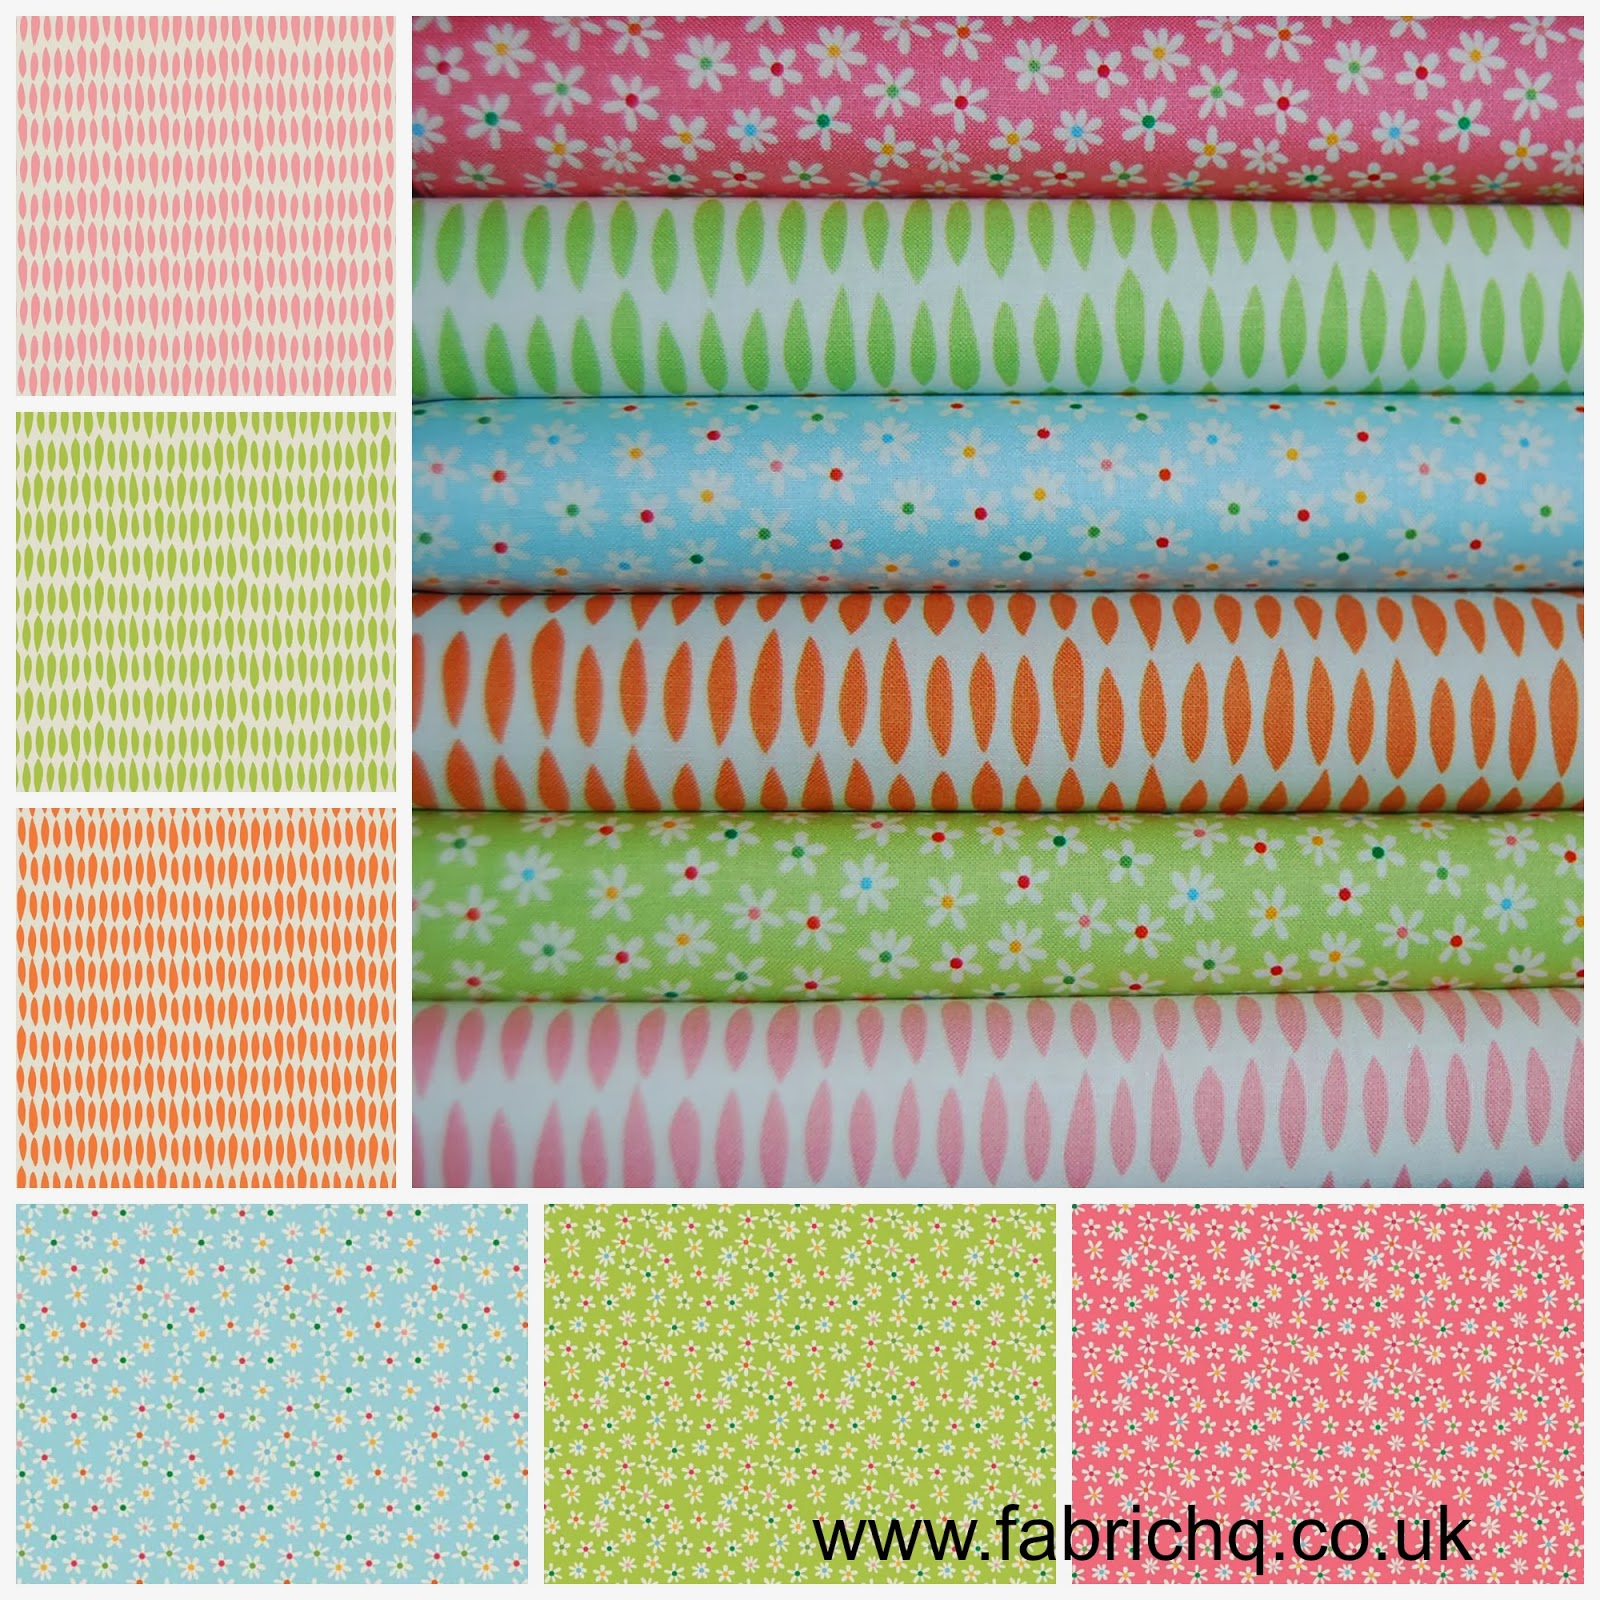 http://www.fabrichq.co.uk/My%20Sunshine%20by%20Zoe%20Pearn.aspx